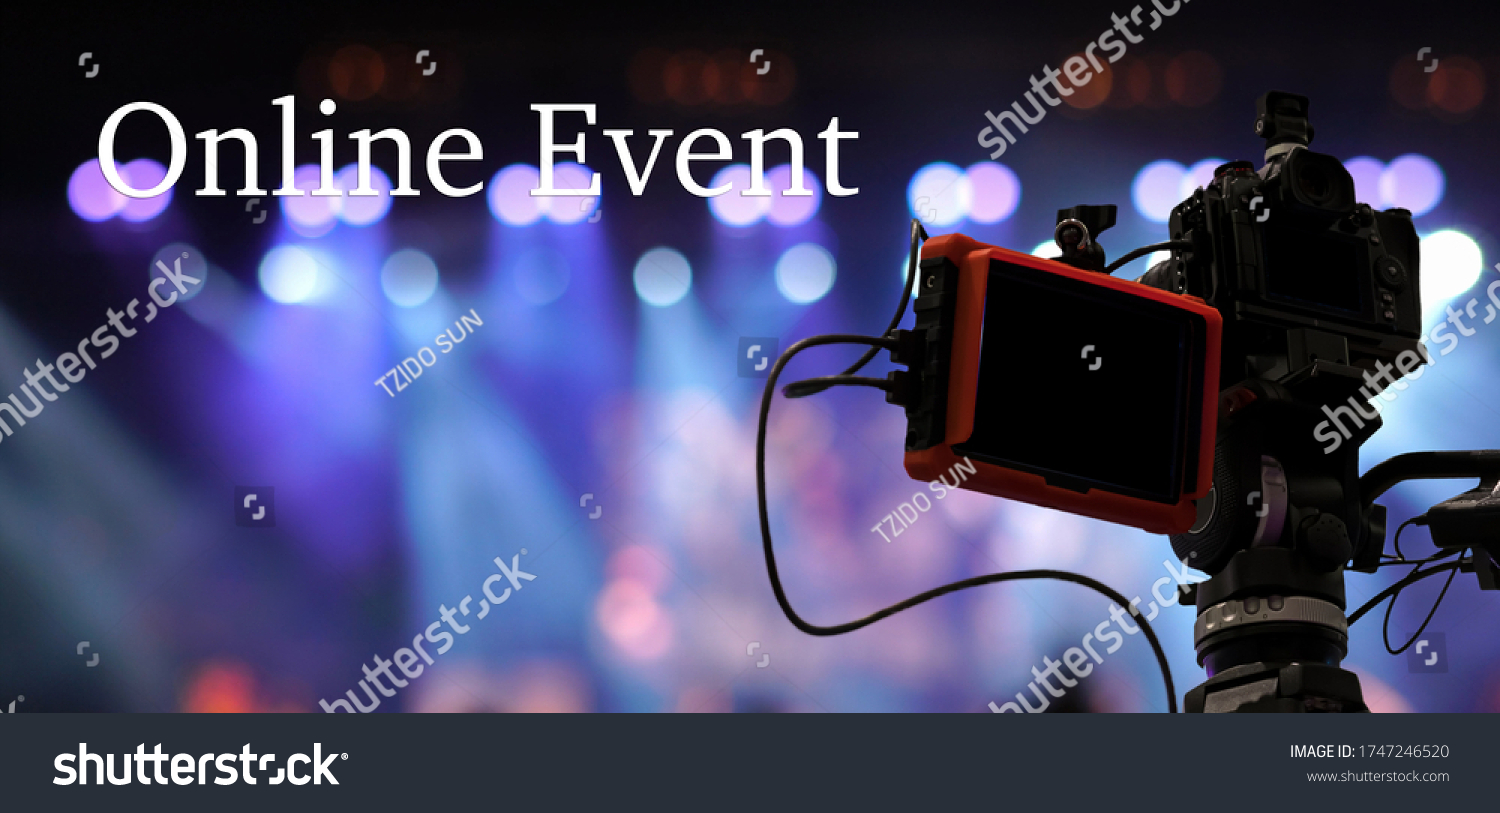 Online Event text over Video Camera recording online webinar or concert via social network or television production broadcast in new normal,Offline is over,covid outbreak,e-learning and online seminar #1747246520